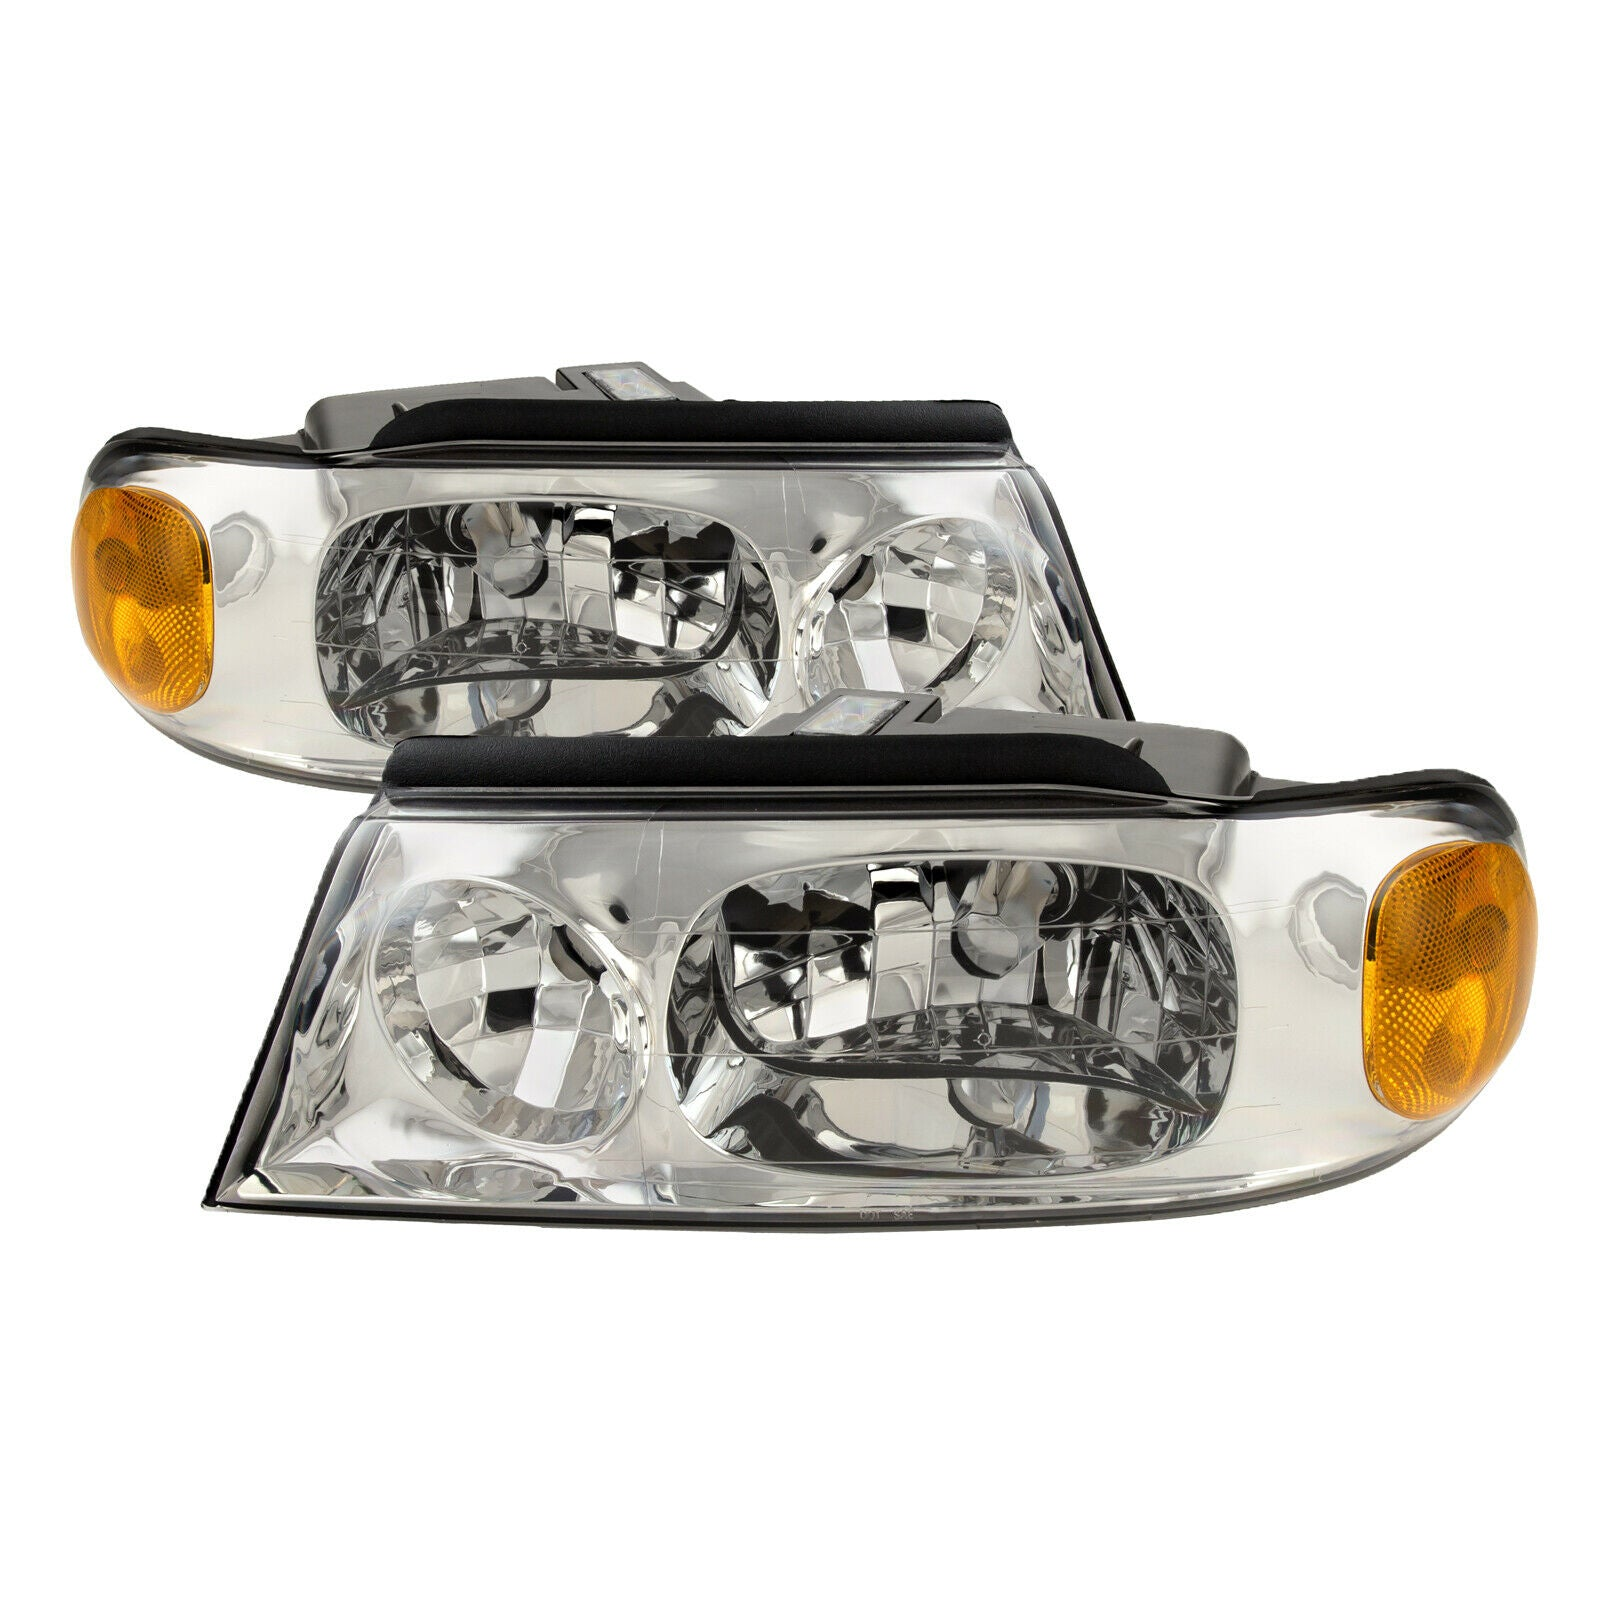 Fits Country Coach Allure 2005-2009 Motorhome RV Left and Right Headlights Pair